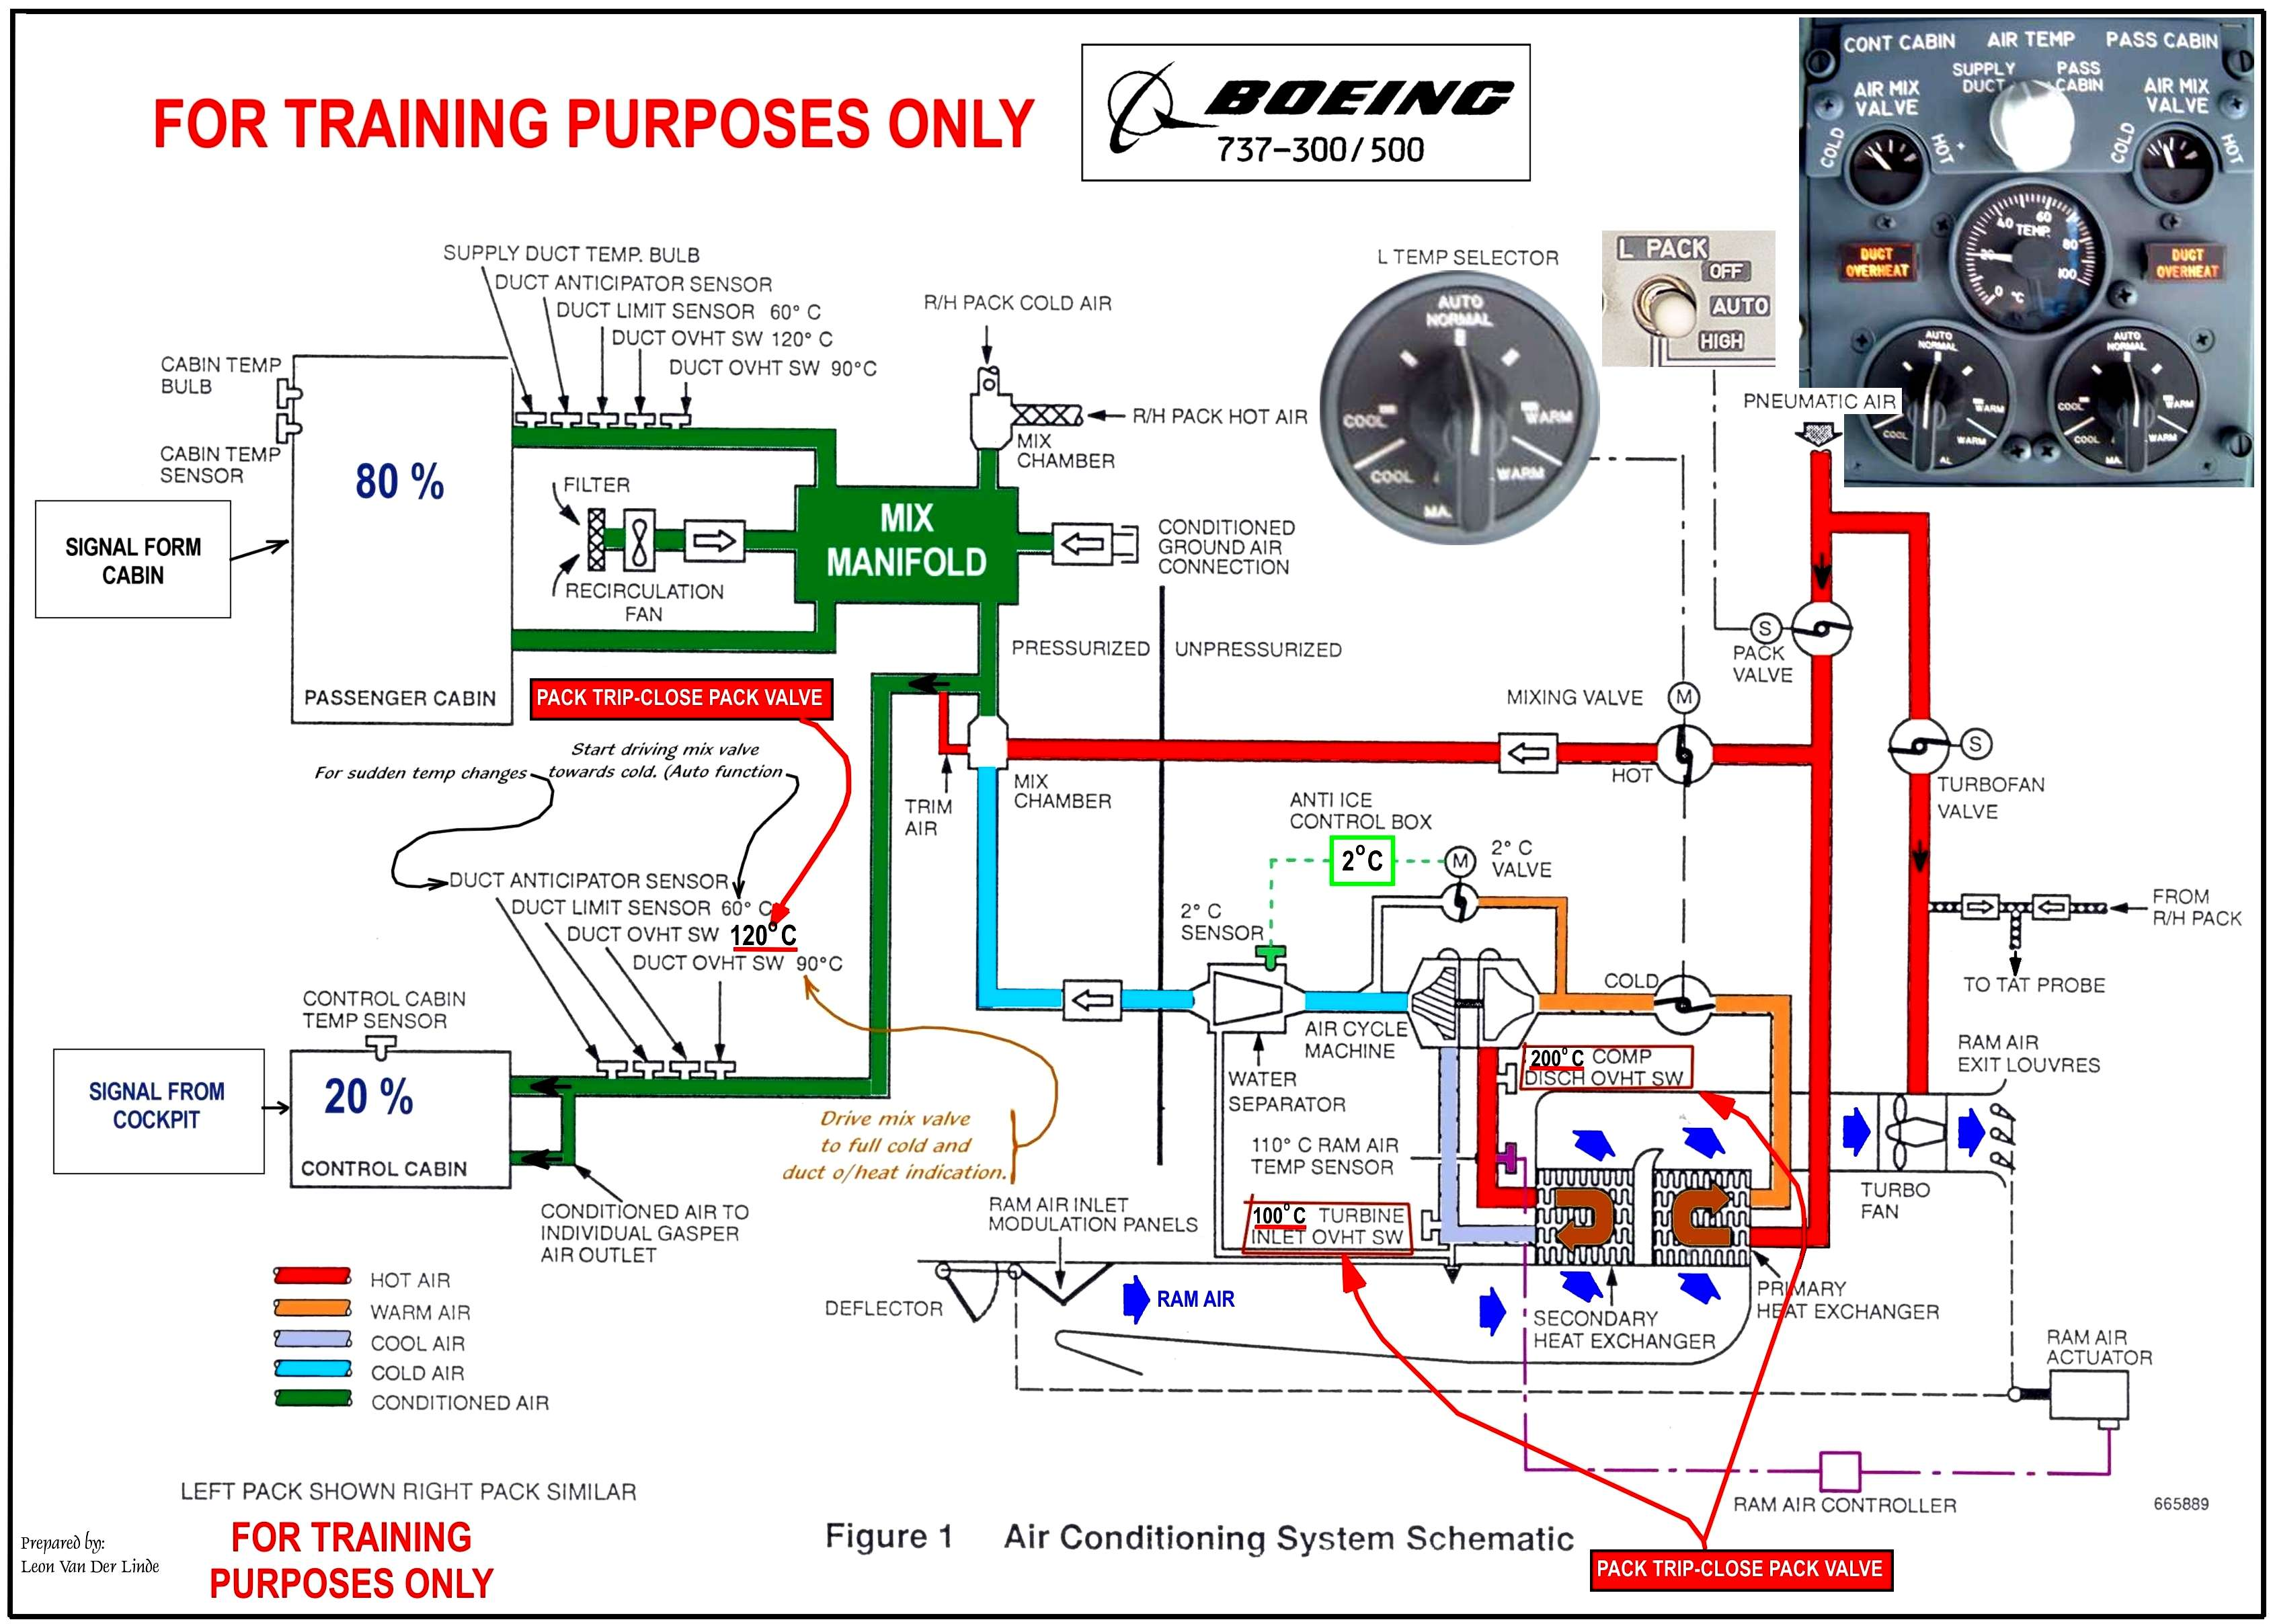 schem_acon_300 hvac systems for dummies buckeyebride com gm wiring diagrams for dummies at panicattacktreatment.co